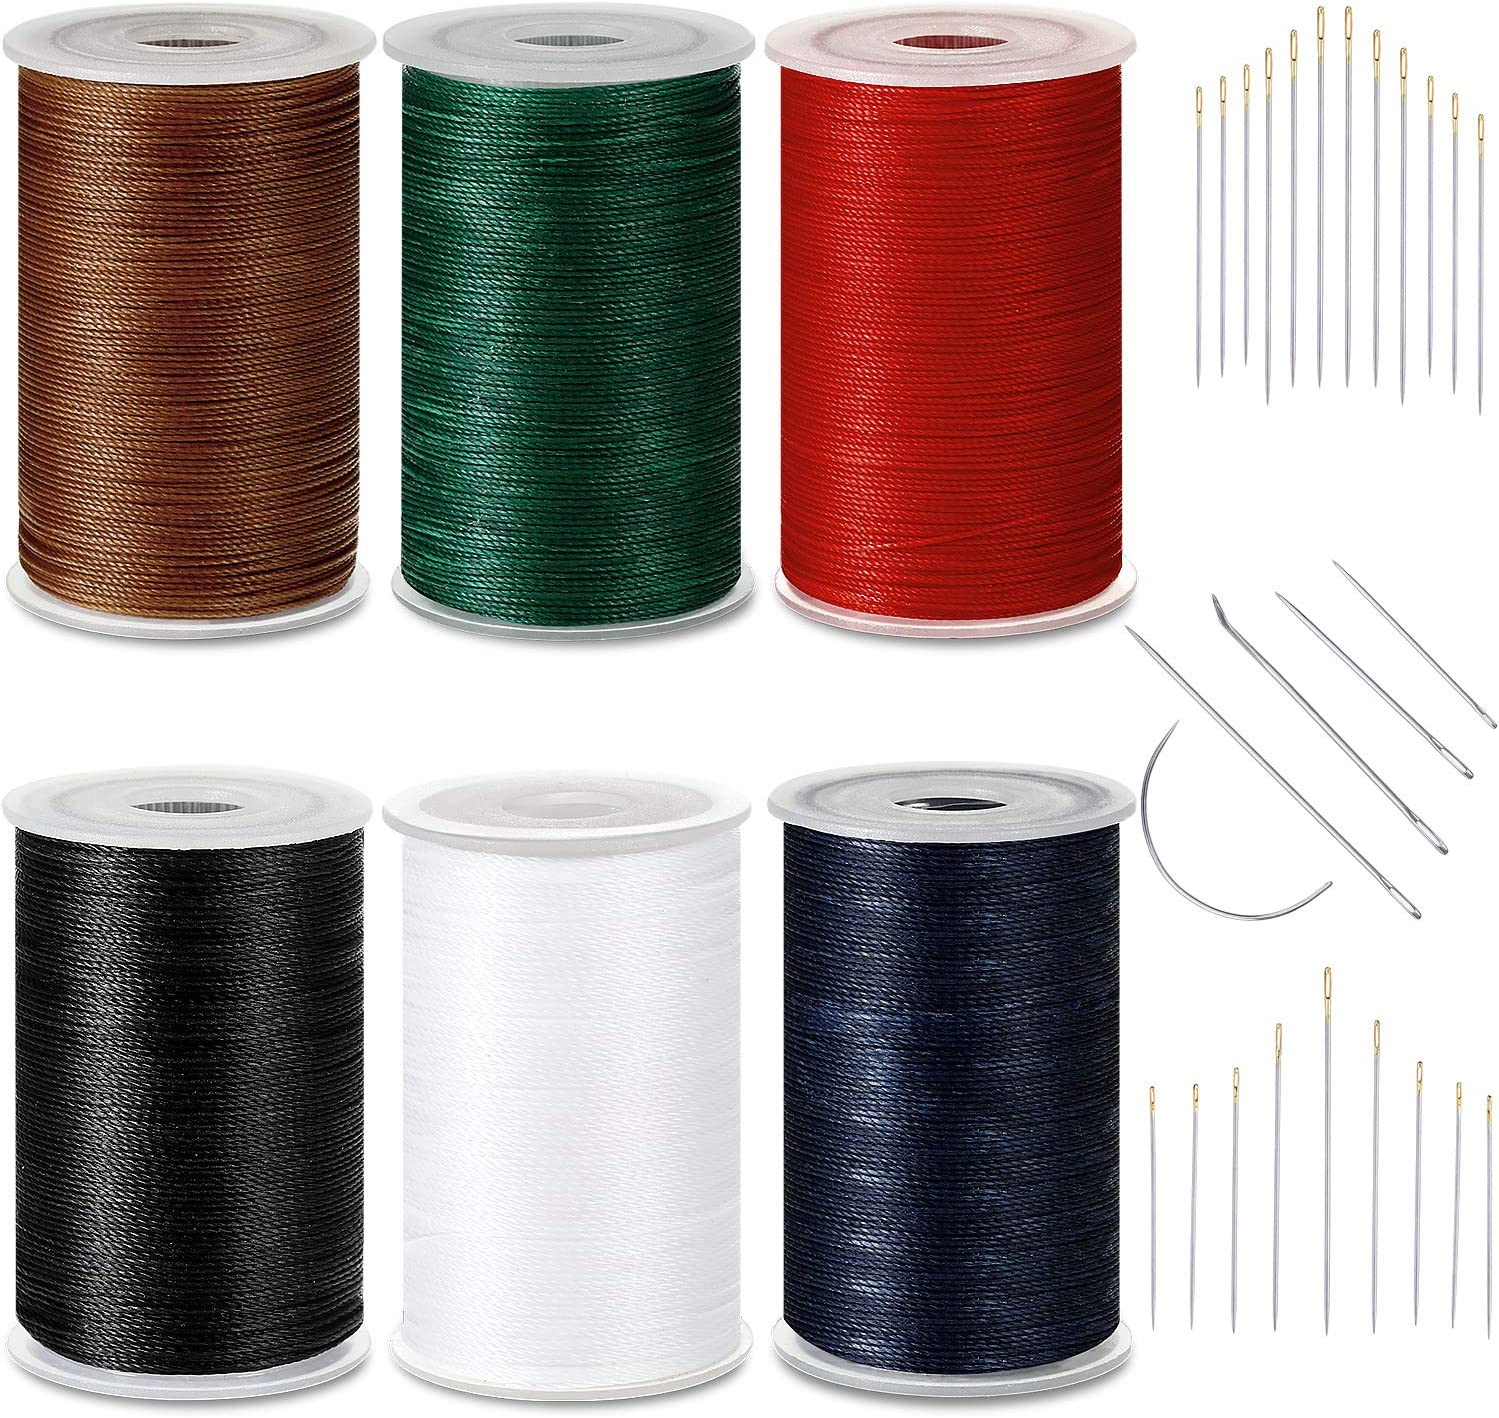 6 Color Strong Upholstery Thread High Strength Sewing Waxed Threads with Hand Stitching Needles Set for Denim Leather Craft DIY and Machine Sewing (Black, White, Red, Dark Blue, Dark Green, Brown)